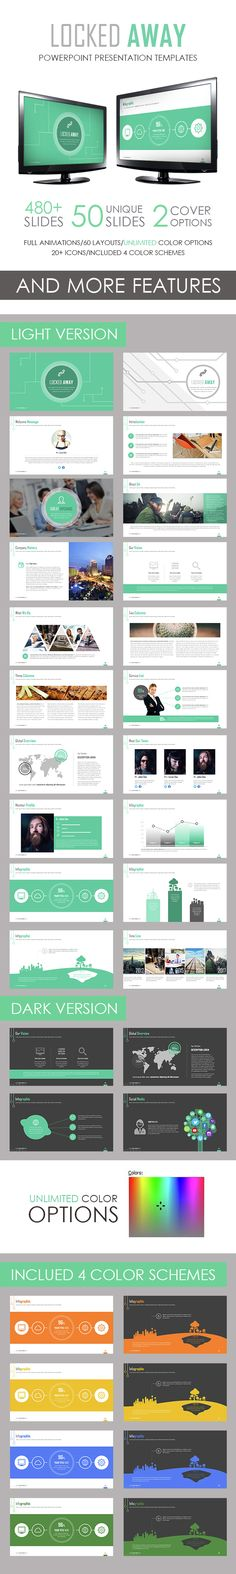 artika colors presentation | presentation templates and business, Modern powerpoint